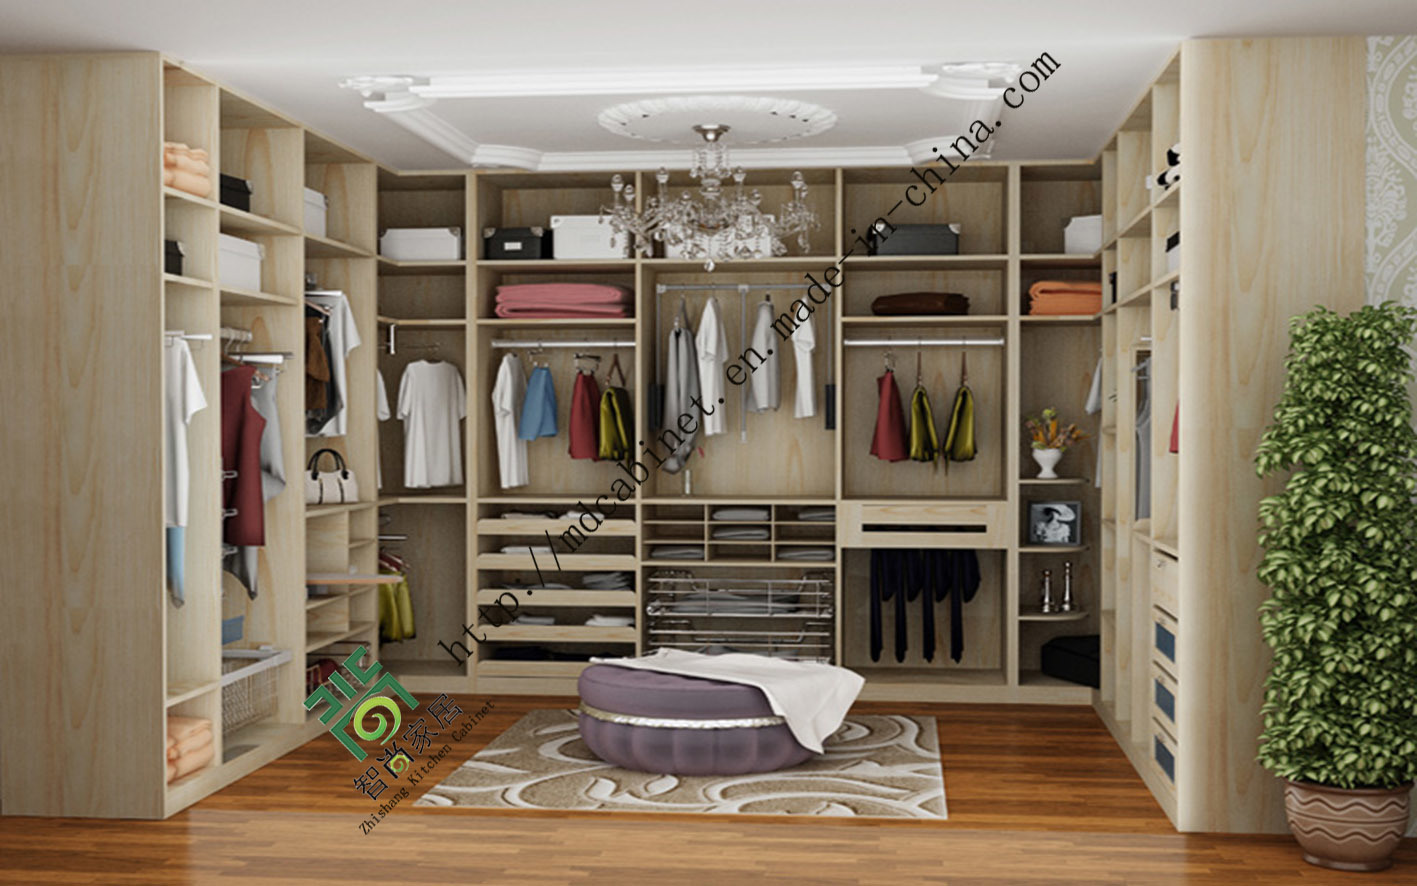 China mdf india bedroom wardrobe sliding door sd 17 - Bedroom cabinets with sliding doors ...